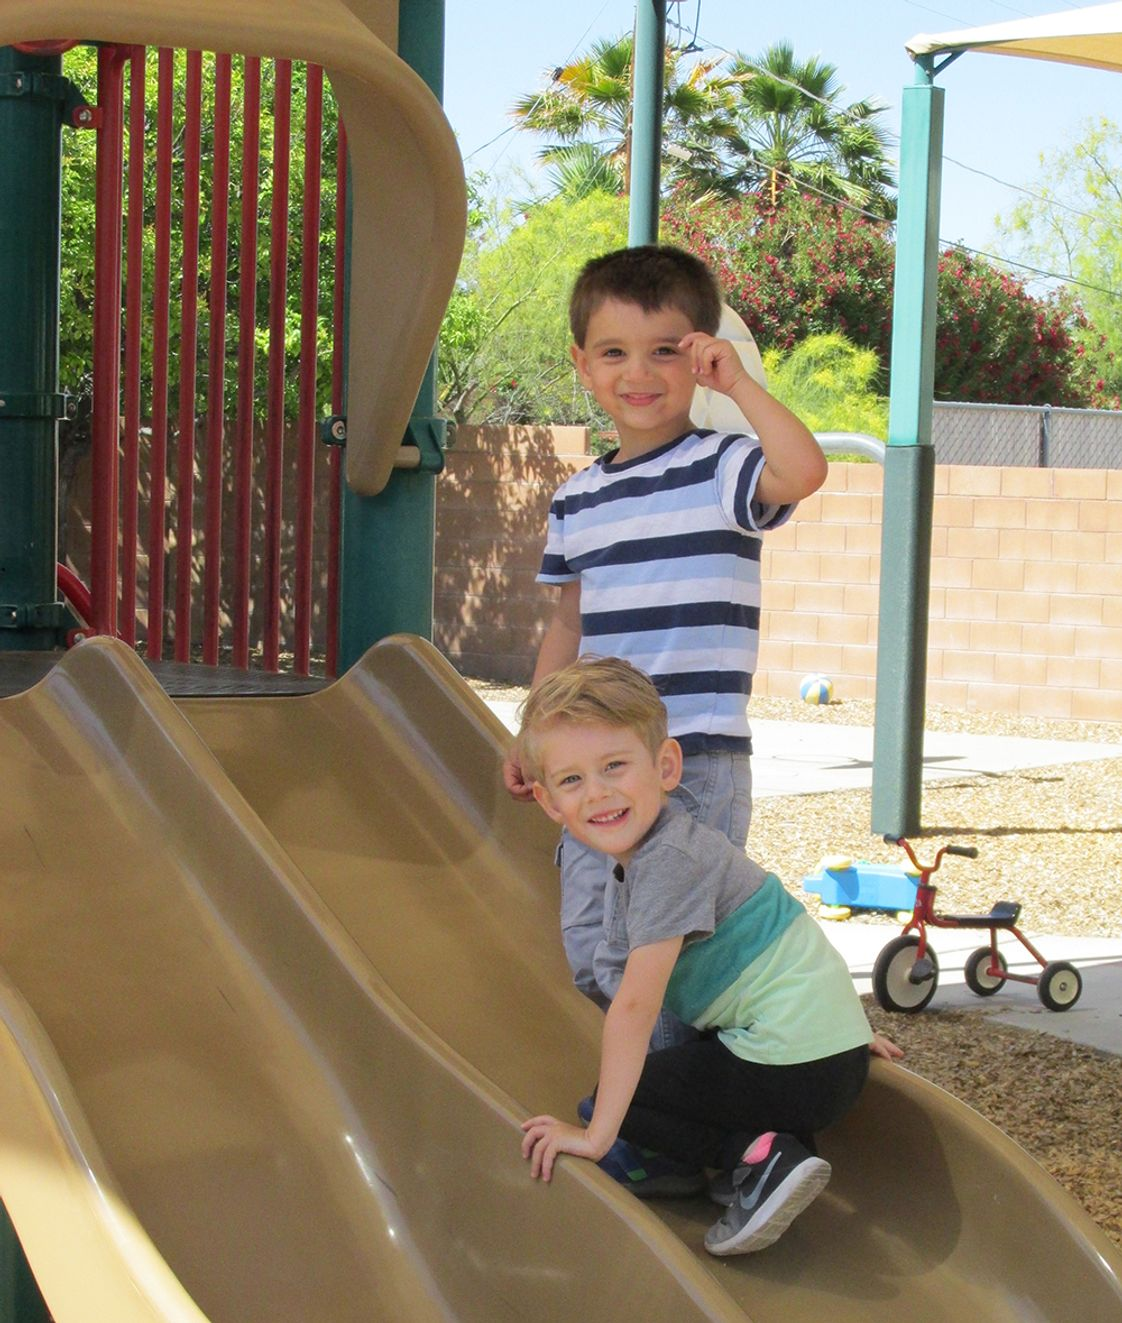 Anshei Israel Preschool & Kindergarten Photo #1 - Lifelong learning and friendships start here!